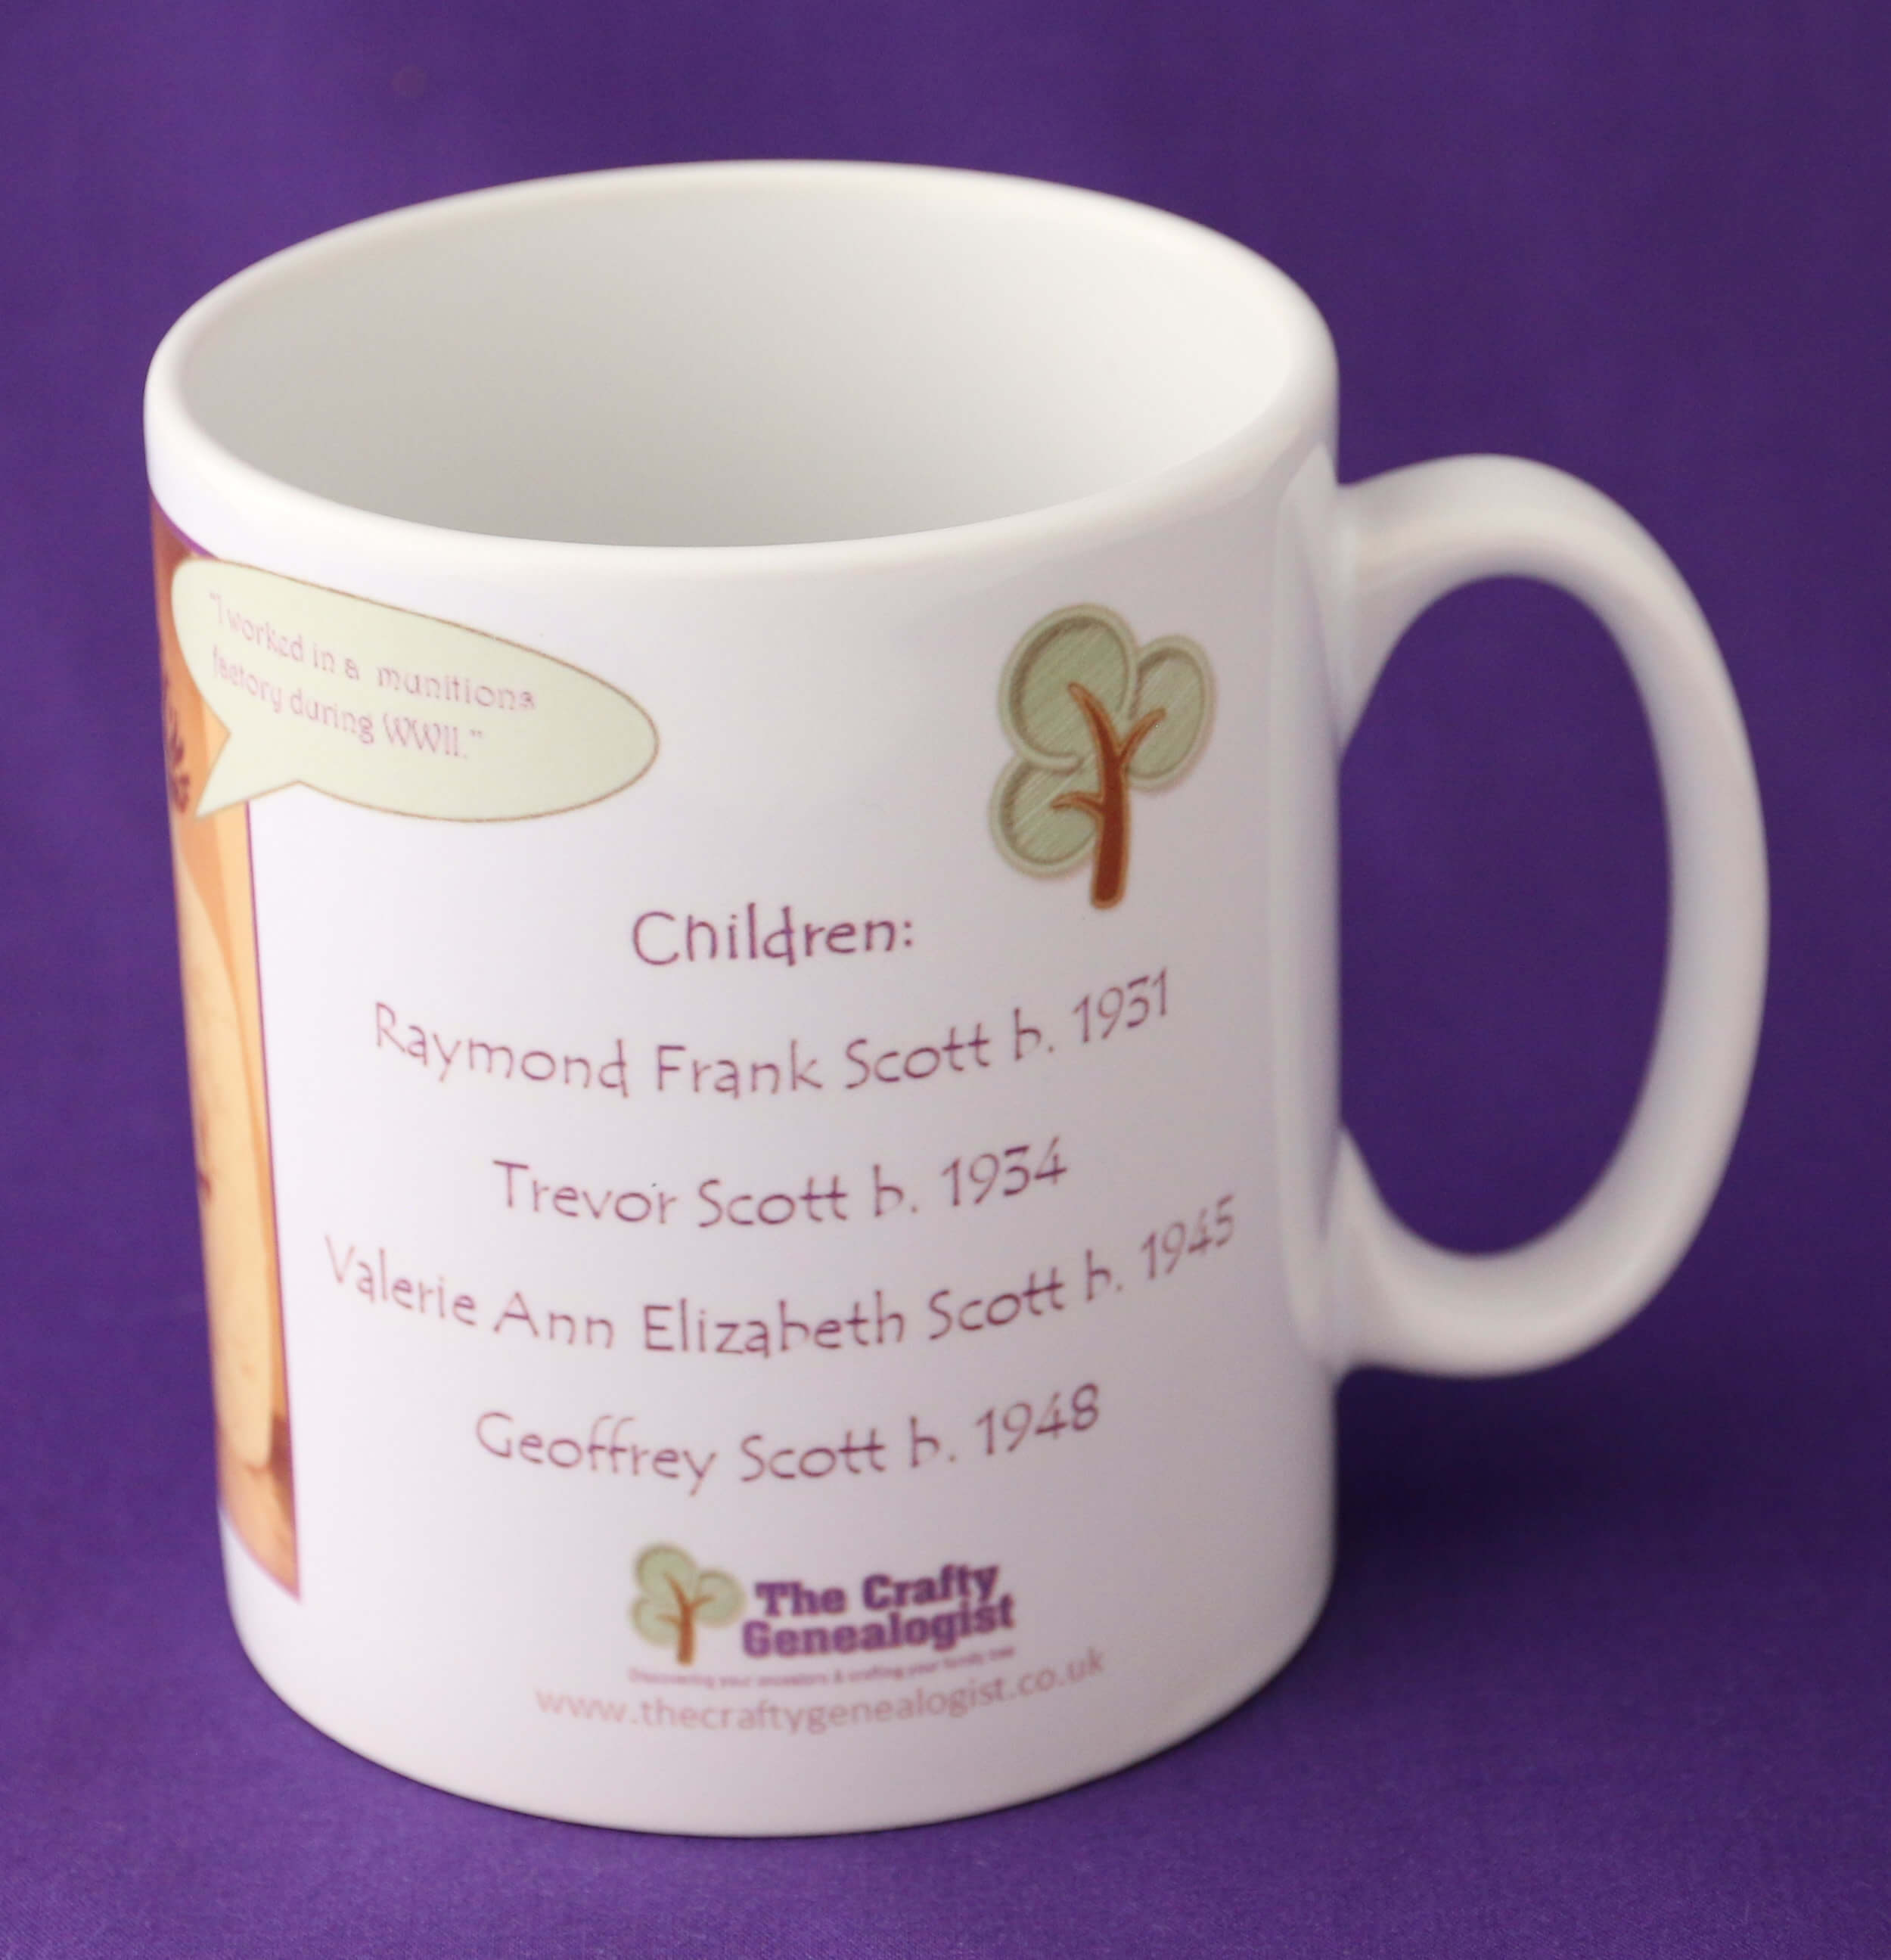 Family Tree Mug personalised with your Ancestor's photograph, name, dates and names of their children